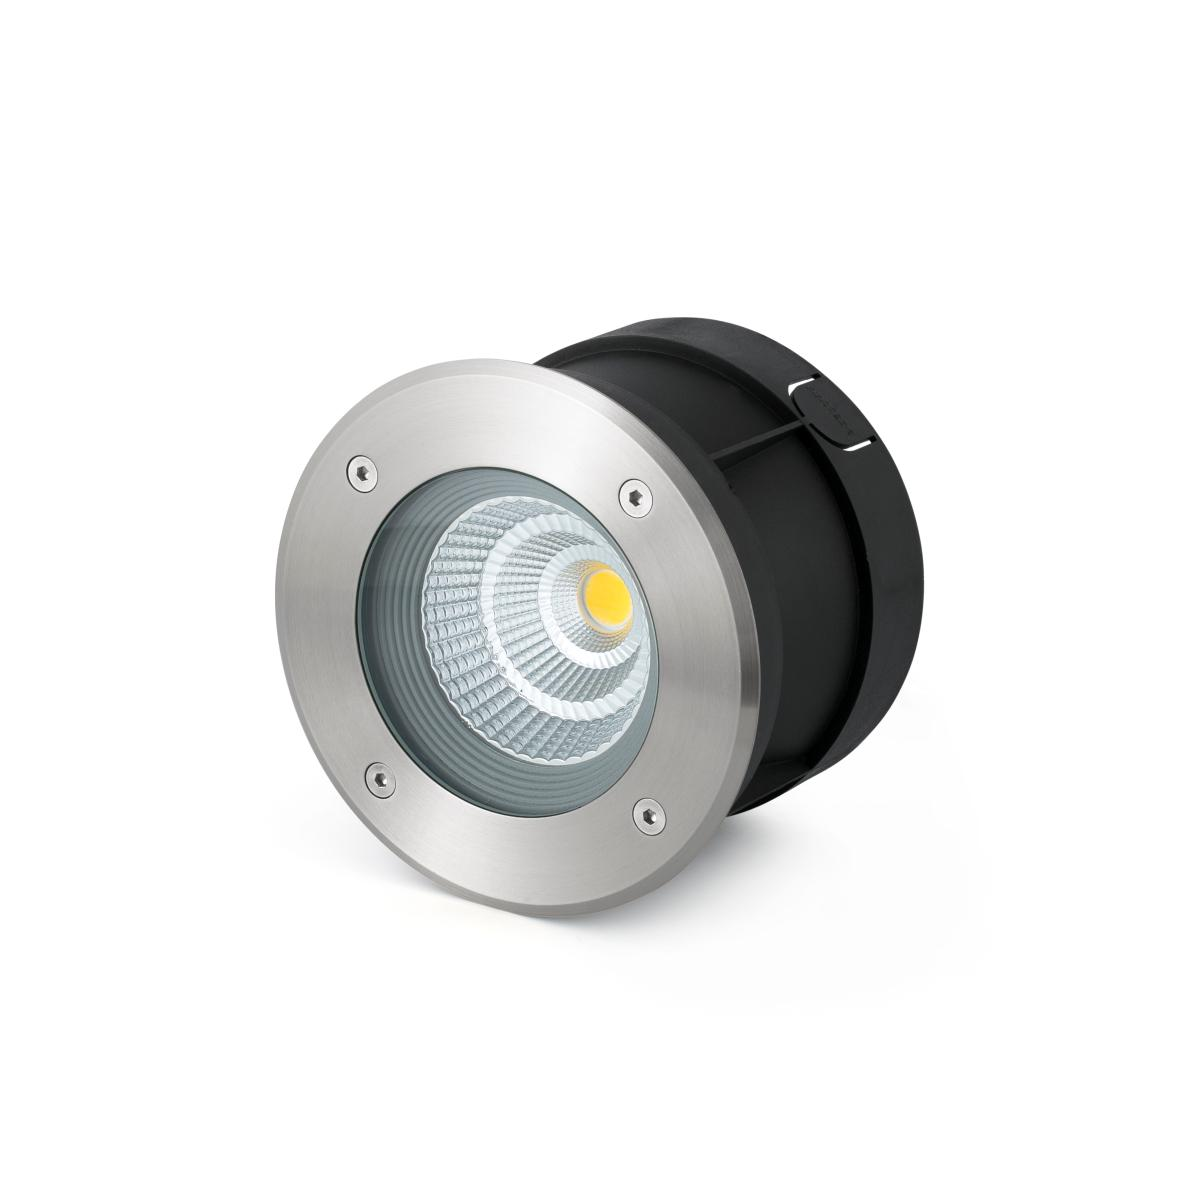 Spot Exterieur Encastrable Led Spot Encastrable Exterieur Led Ip67 12w 24 Inox 316 Faro